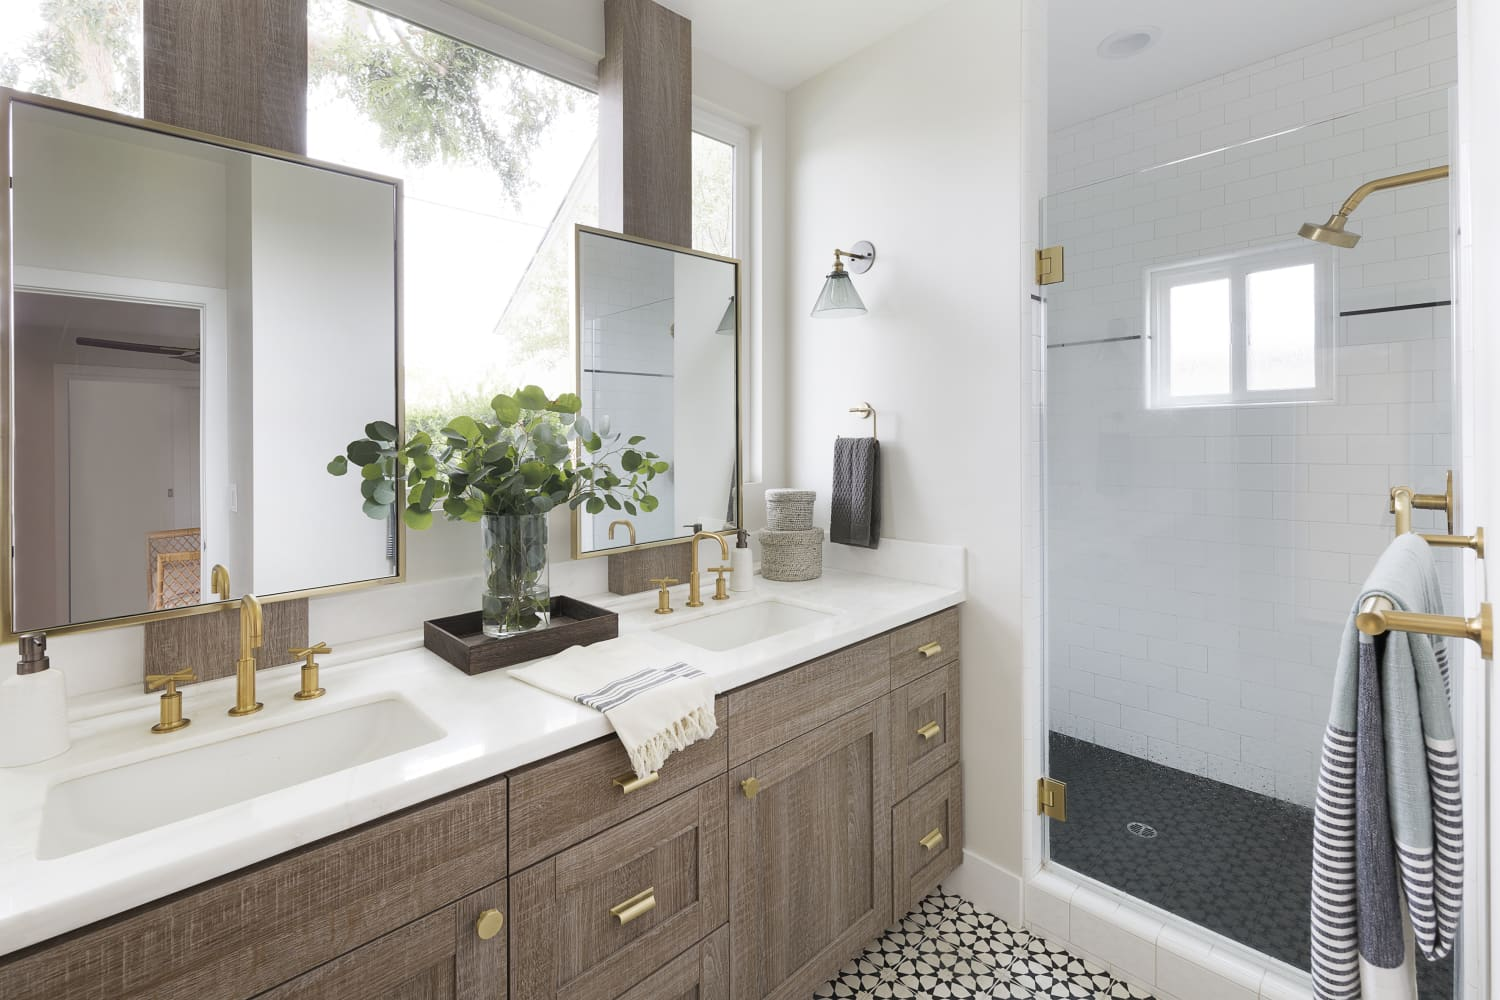 walk in shower vs bathtub pros and cons for resale